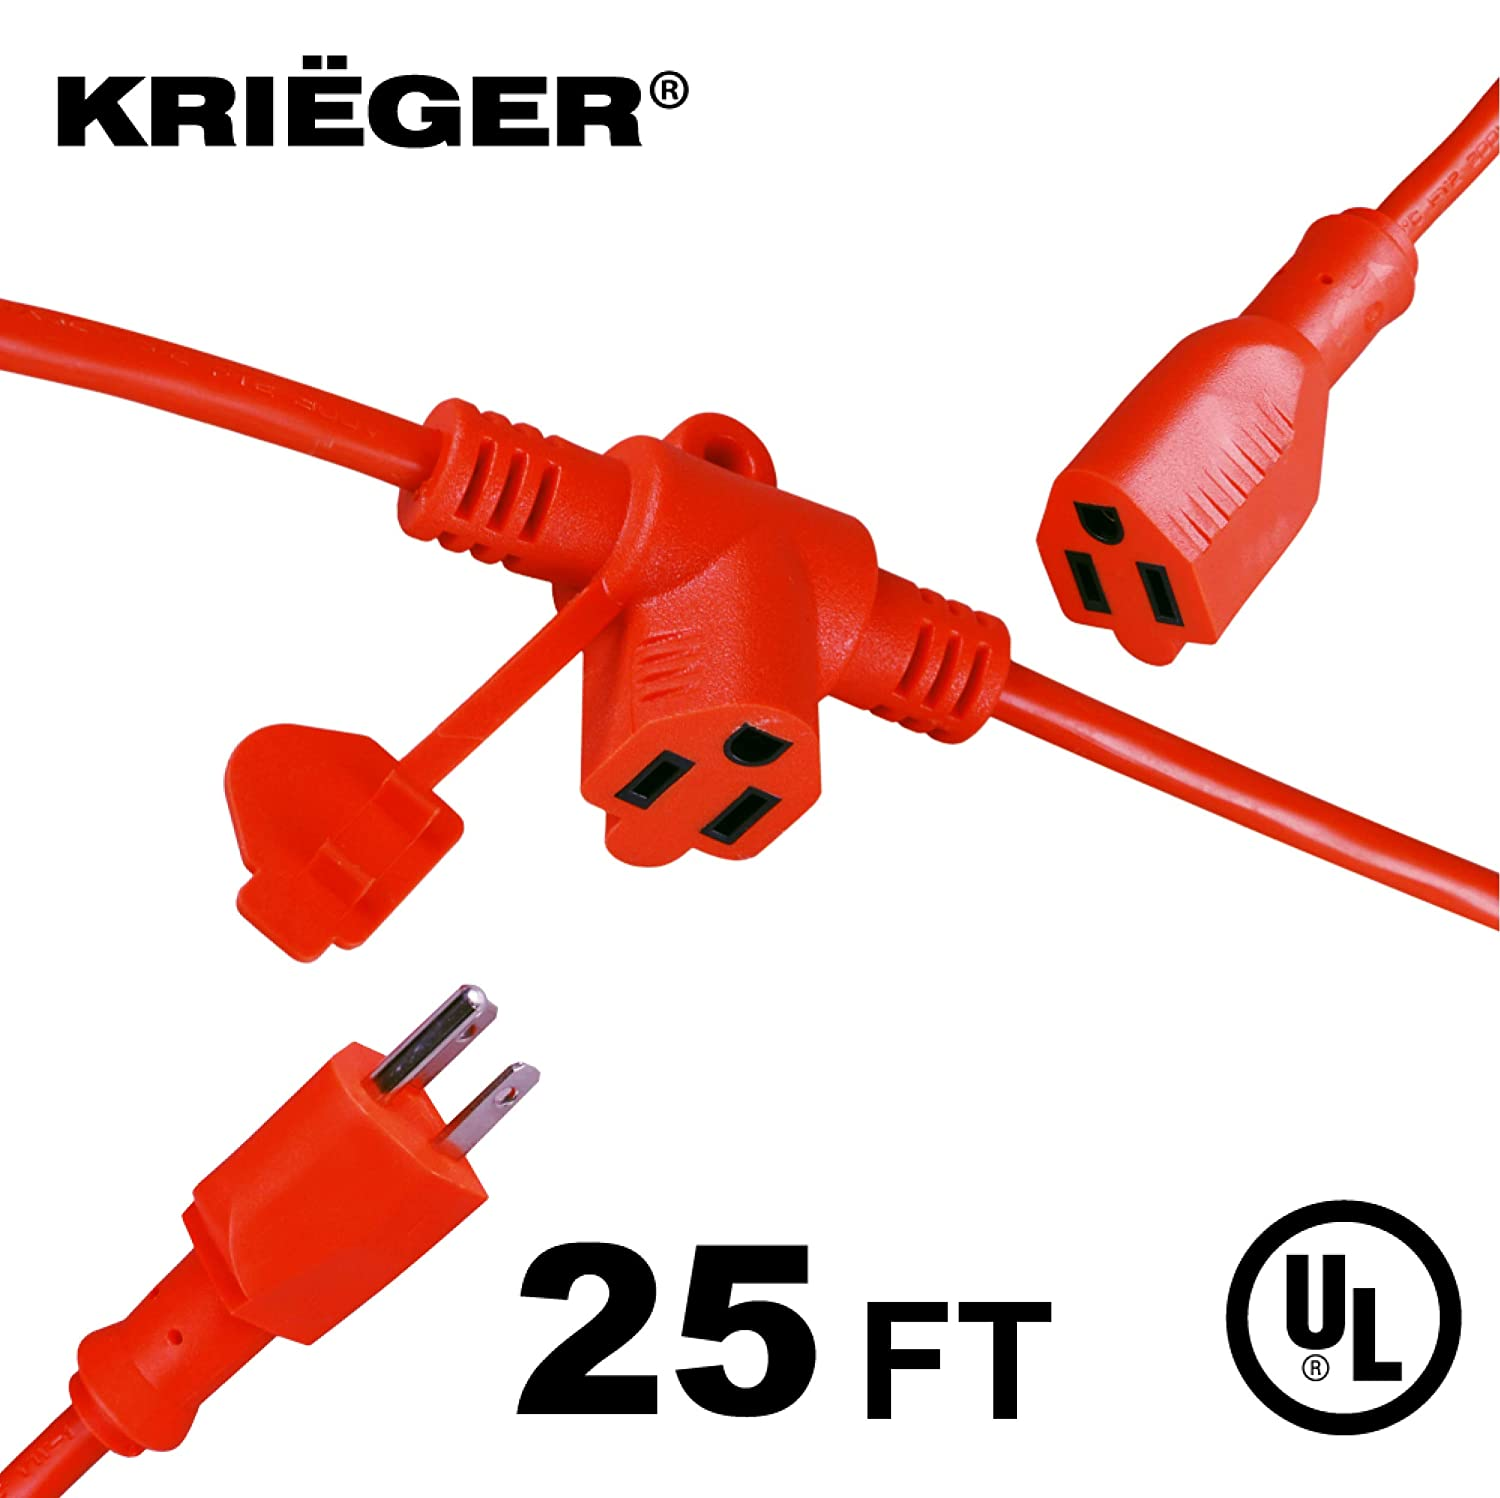 KRIË GER Heavy Duty Multi-Outlet Outdoor Extension Cord with Evenly-Spaced Outlets- 3 AC Power Plugs in 1 Extension Cord - Ideal for Indoor and Outdoor Lights and Appliances- 25 Ft Long KRIEGER